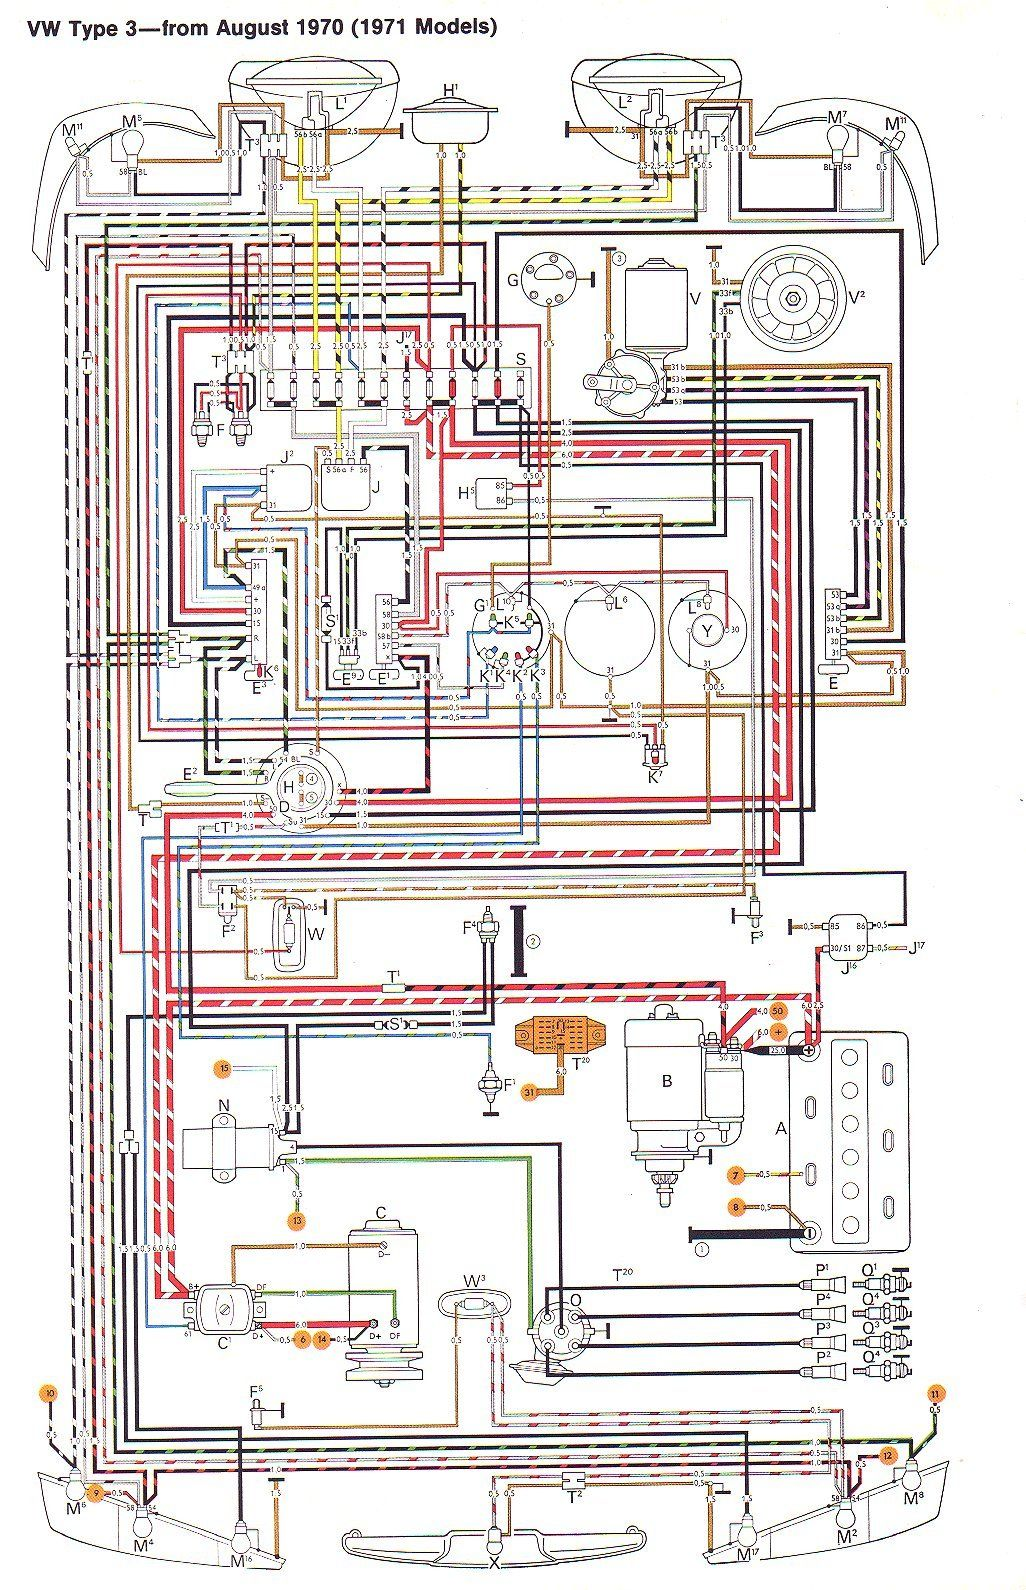 e0db58370f79a63d02d45f00cf63f44a 71 vw t3 wiring diagram ruthie pinterest volkswagen, engine vw engine wiring diagram at crackthecode.co